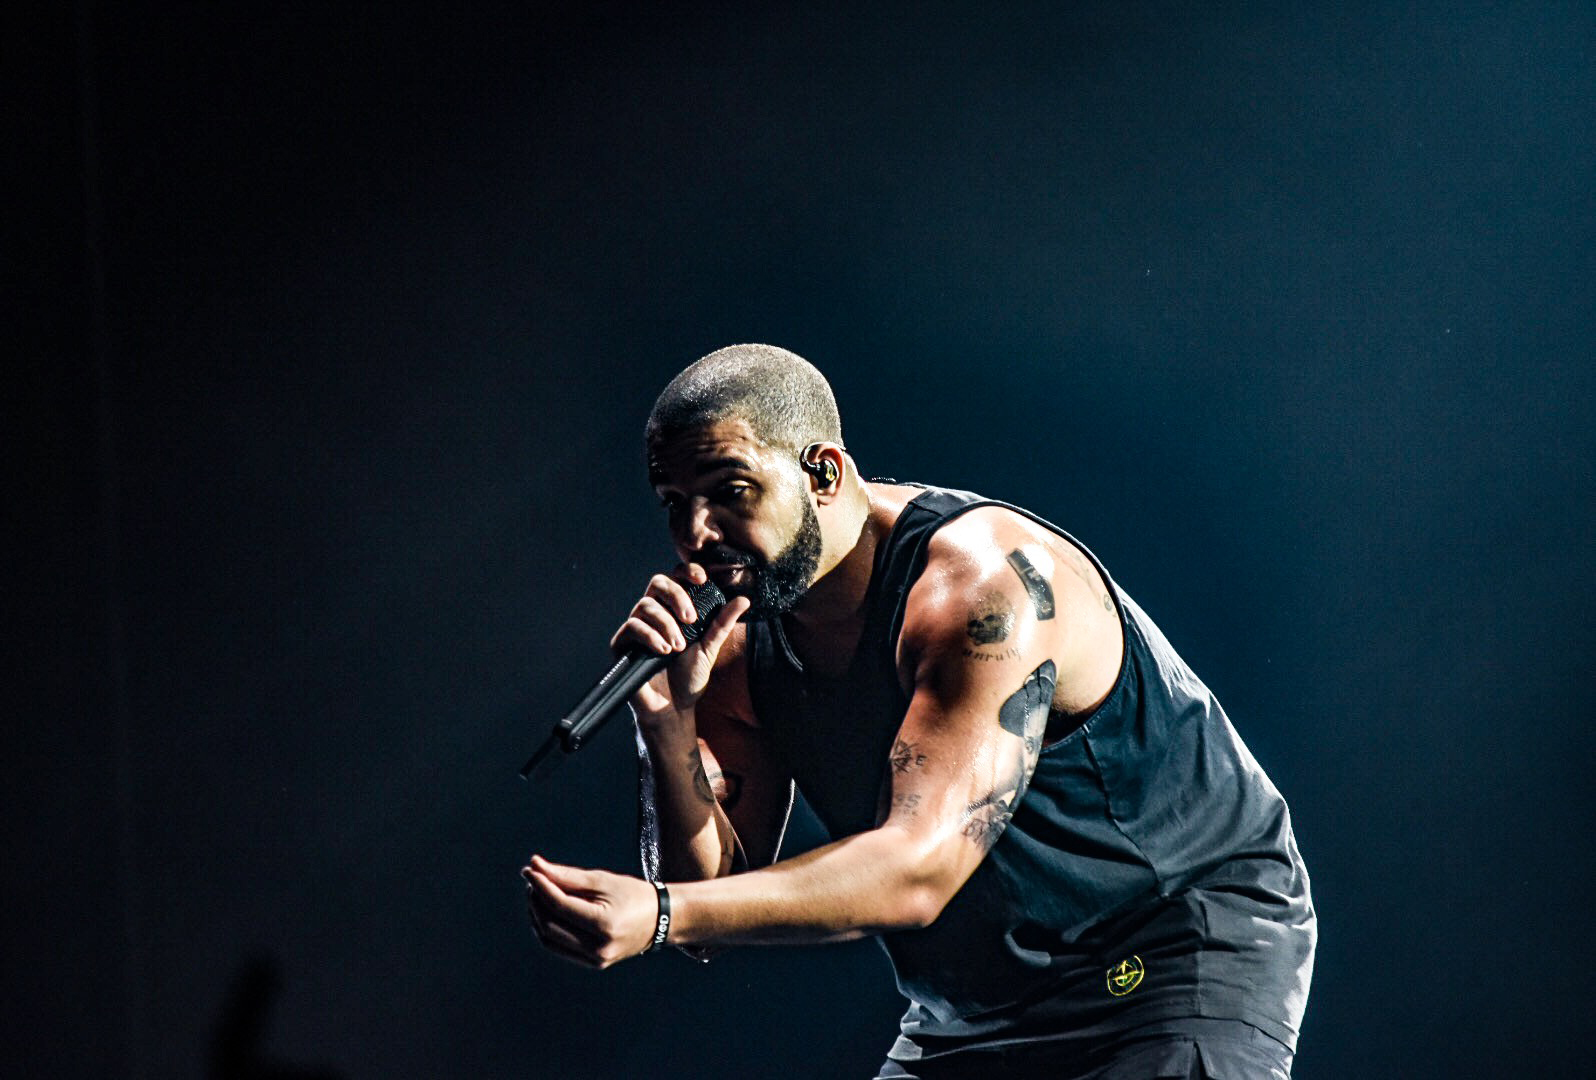 02 - Drake Performs at Glasgow's SSE Hydro as part of The Boy Meets Word Tour - 23-03-17 - Picture By - Calum Buchan Photography.jpg